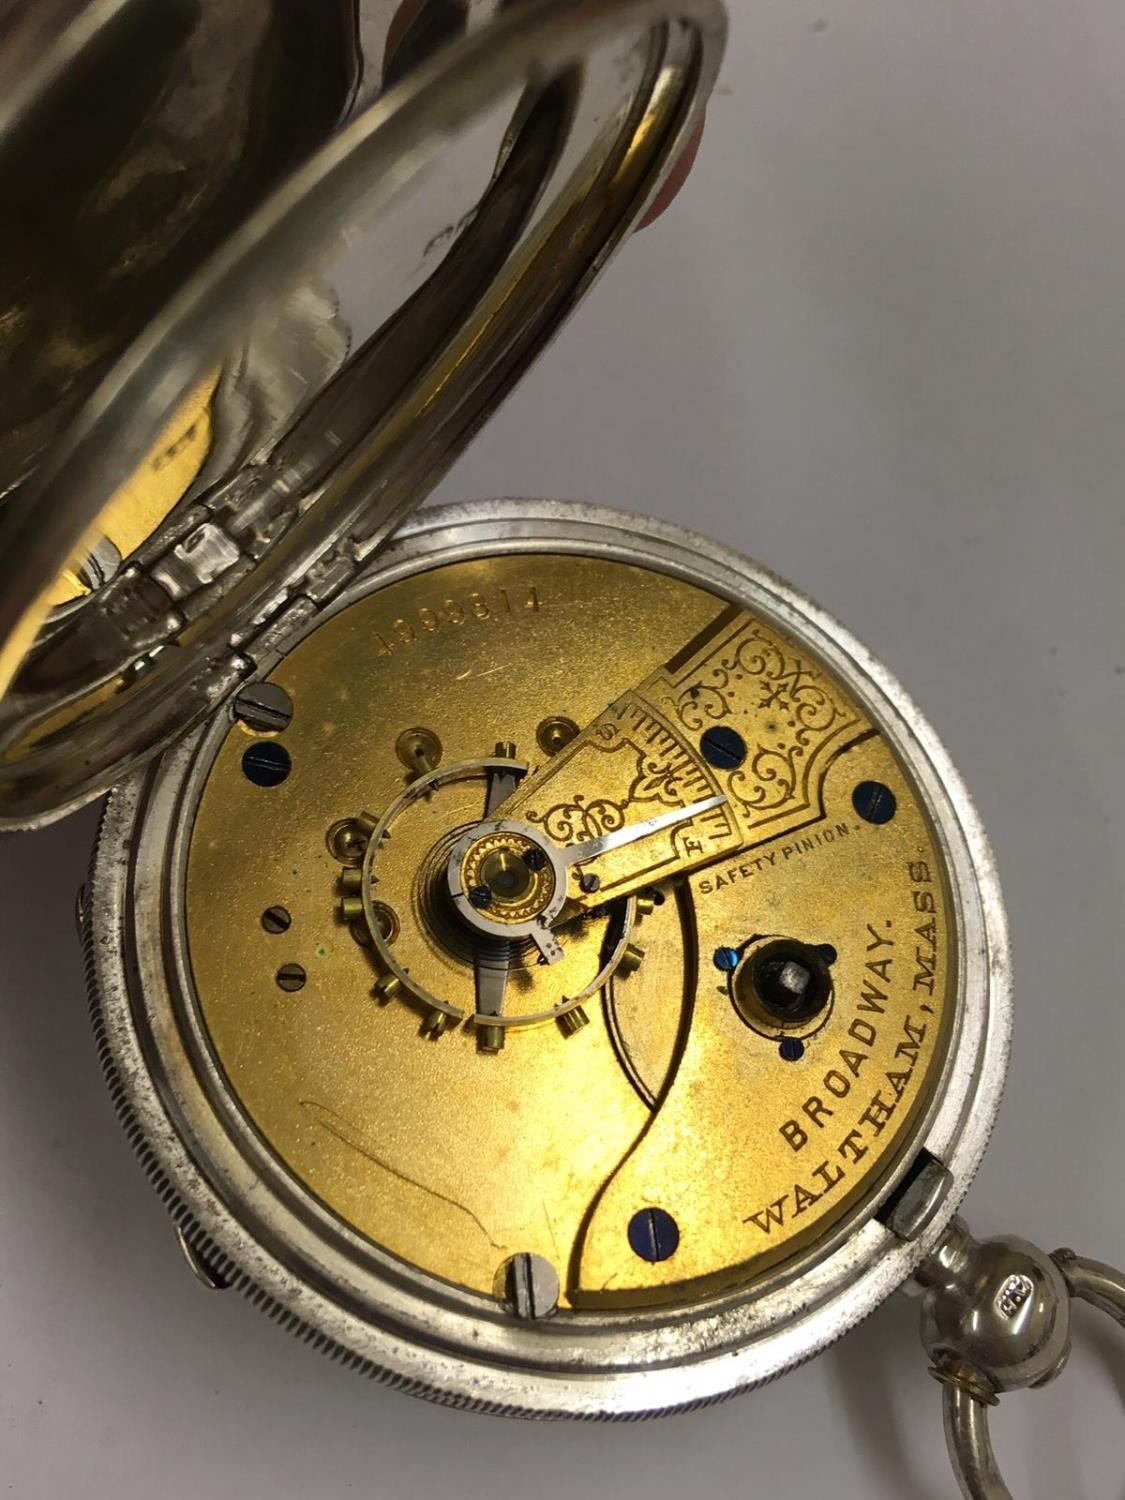 Antique solid silver Waltham Broadway , ticks if shaken but sold with no guarantees - Image 3 of 4